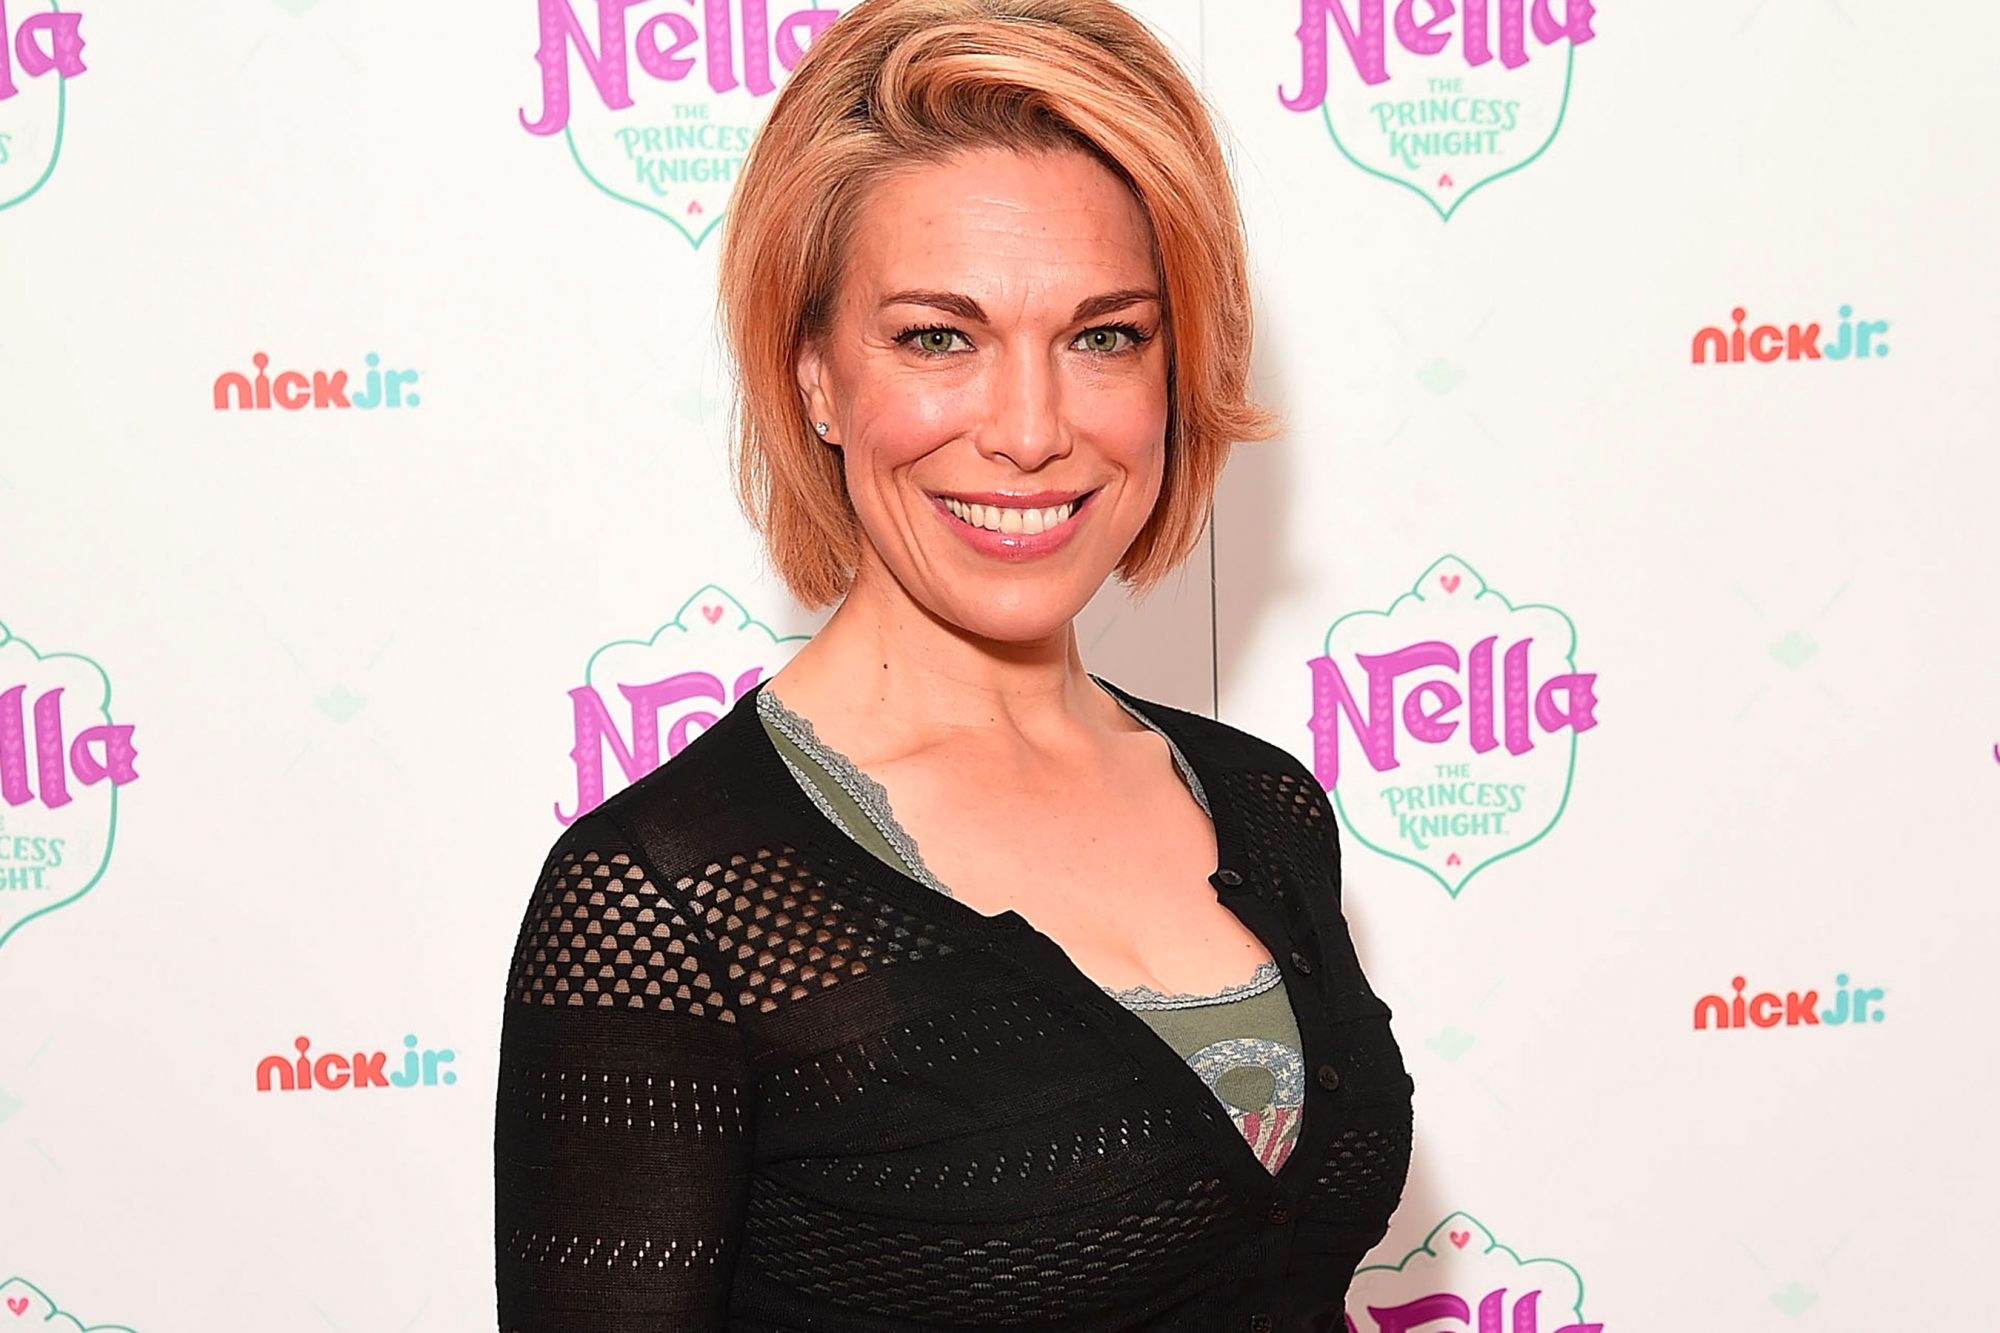 Celebs Reign At Nick Jr. Premiere Of Nella The Princess Knight